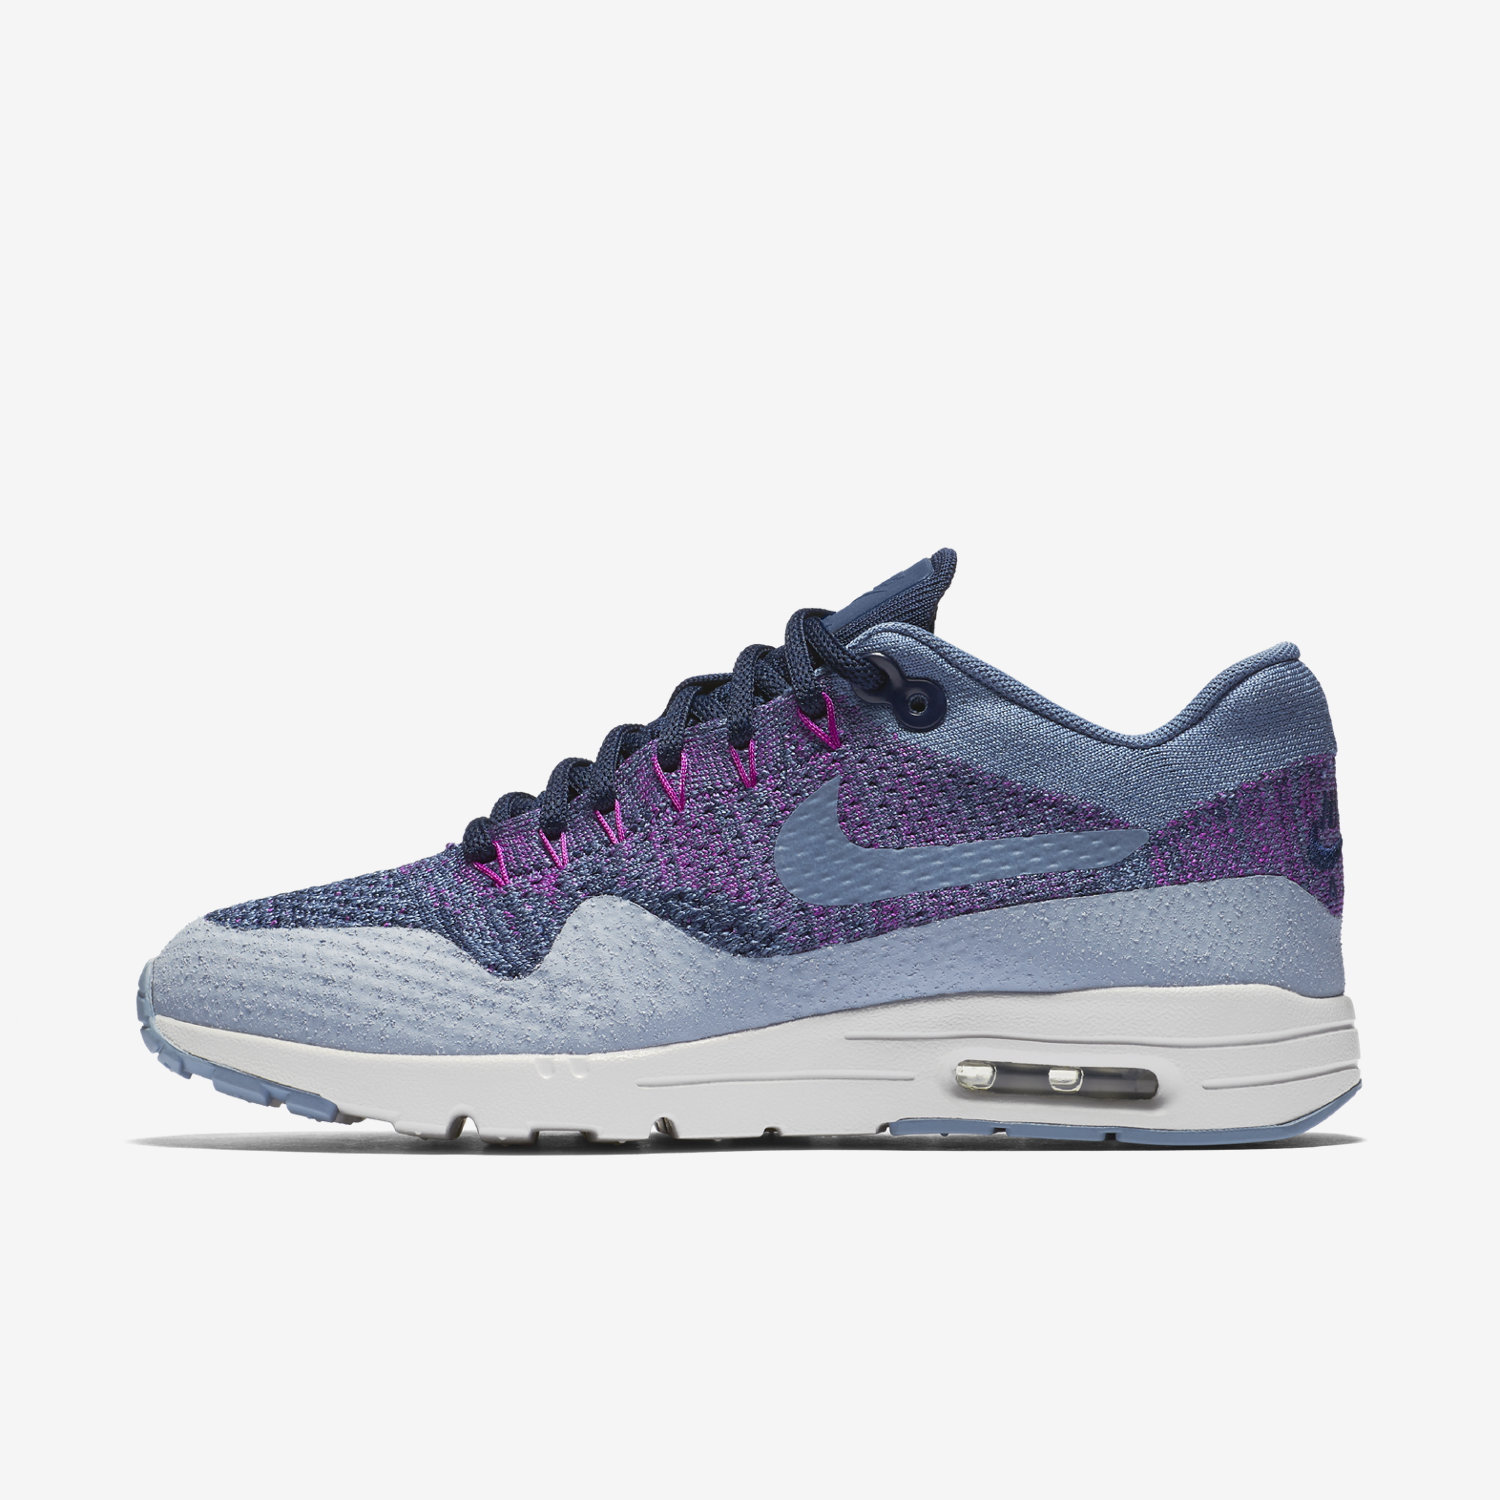 Cheap Nike Air Max 2017 wholesale jordans